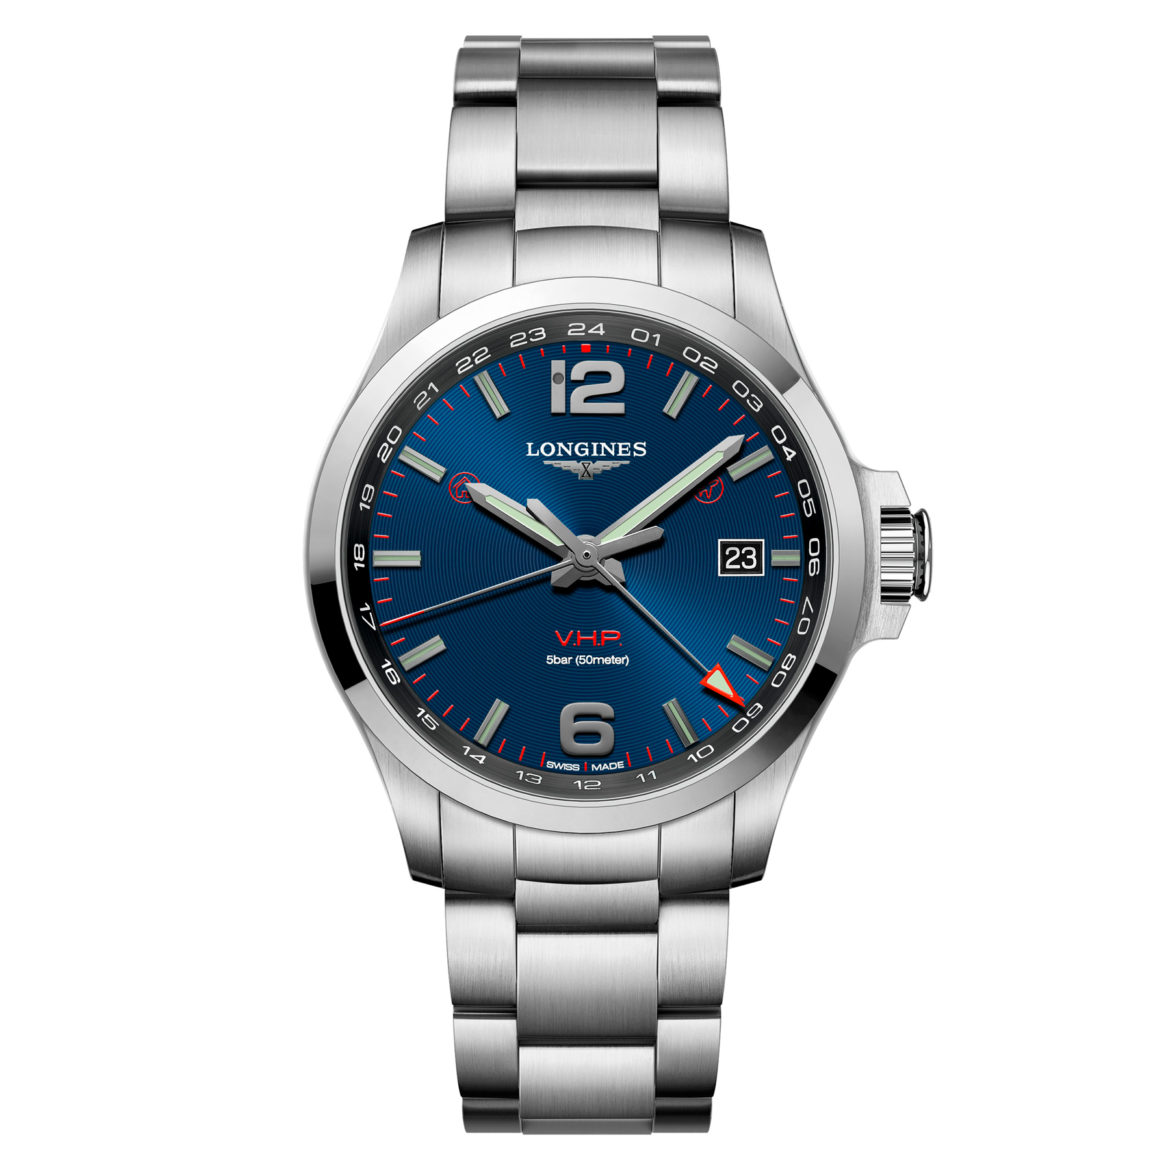 LONGINES</br/>Conquest VHP </br/>L37284966